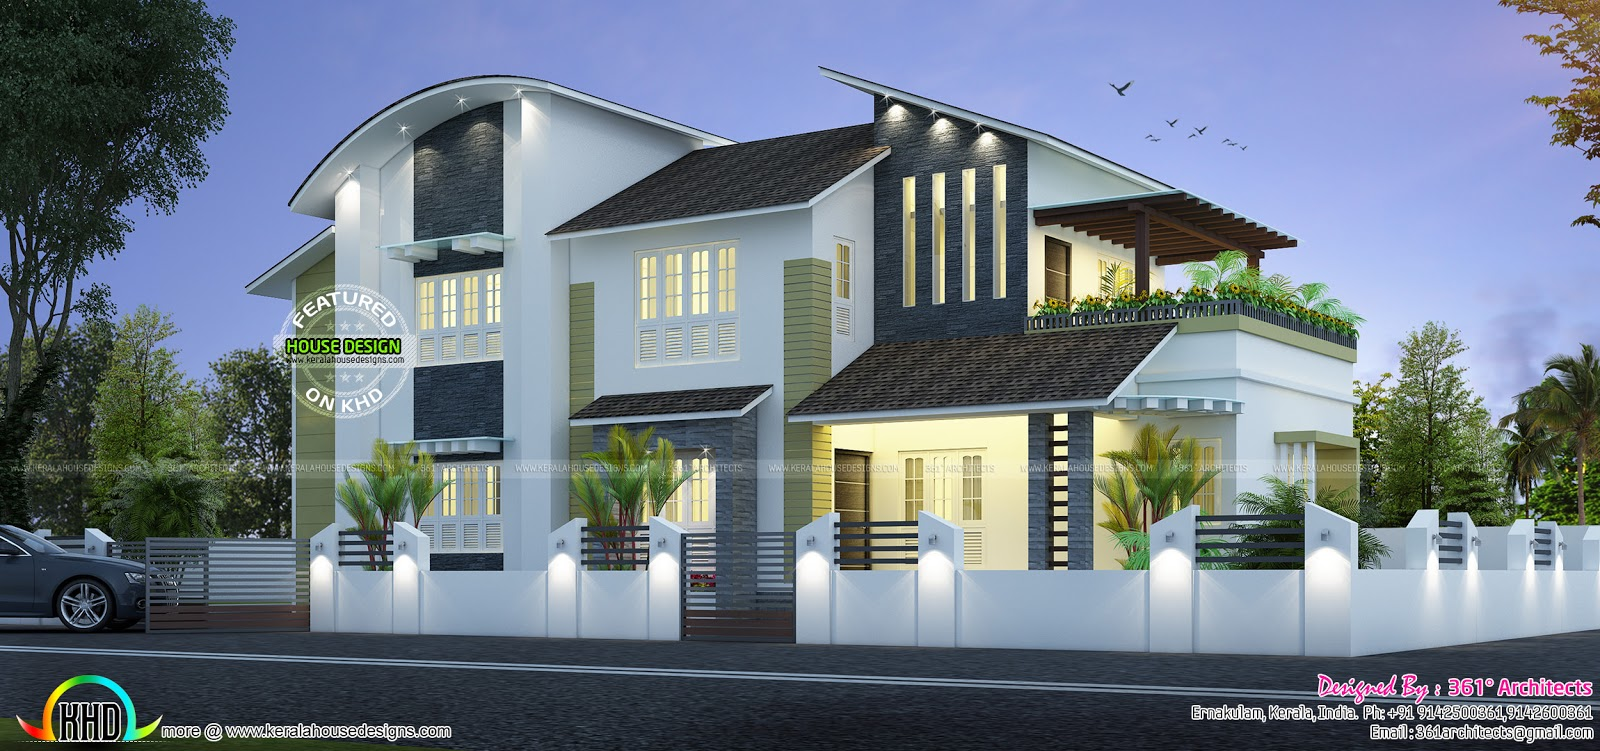 New modern house 35 lakhs kerala home design and floor plans for New house design photos